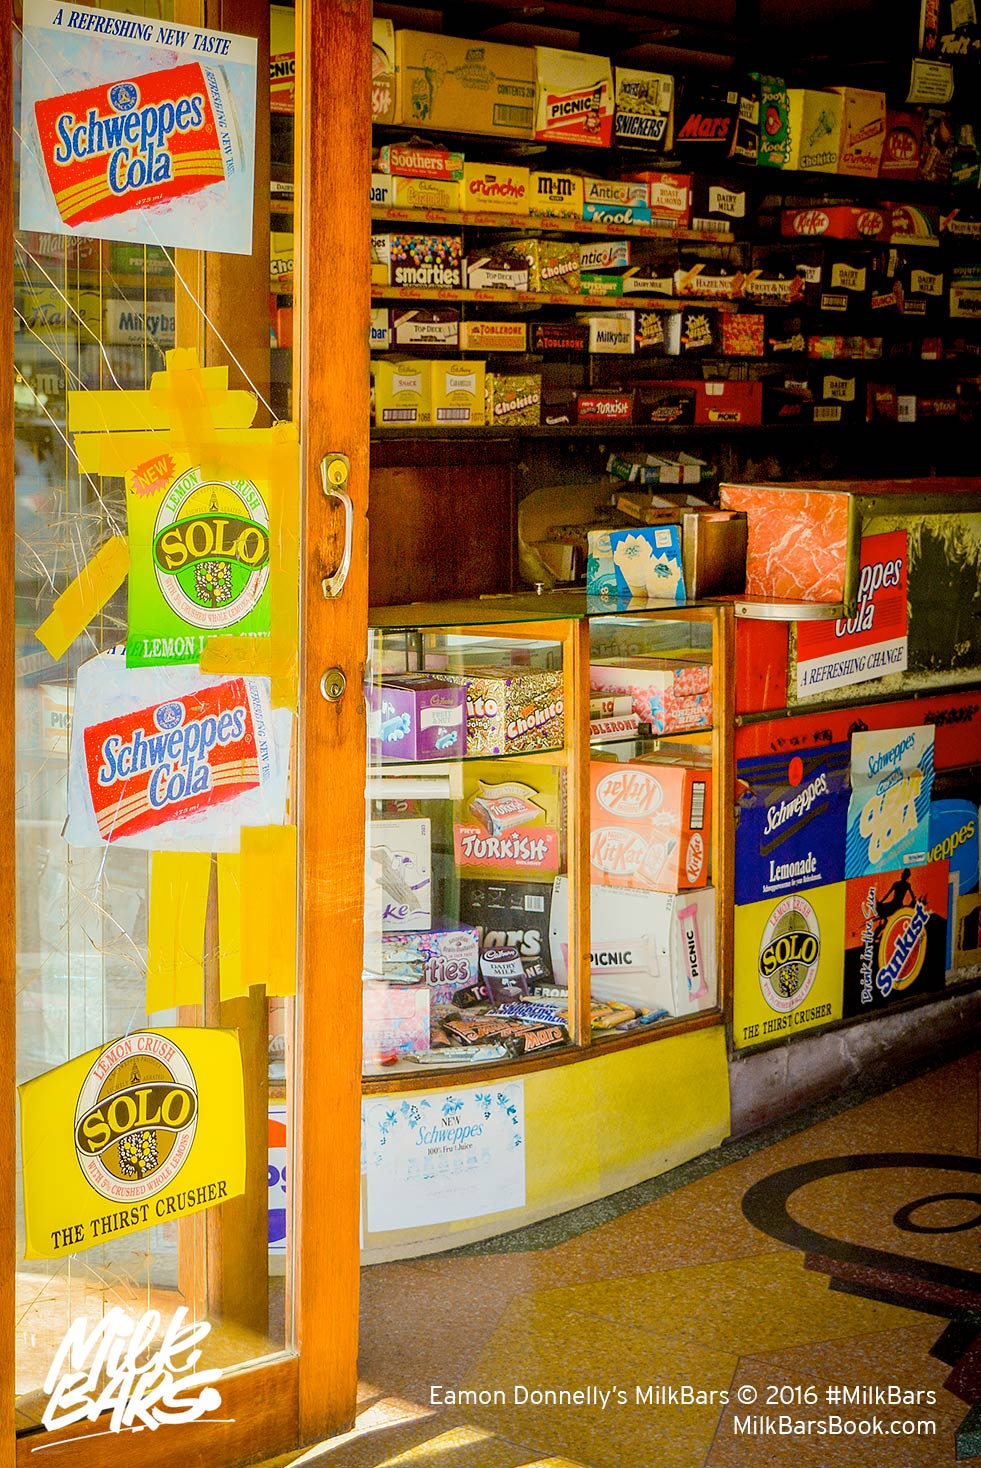 Olympia-Milk-Bar-3-Sydney-Stanmore-Parramatta-Road-Eamon-Donnelly's-Milk-Bars-Book-Project-(c)-2001-2016.jpg